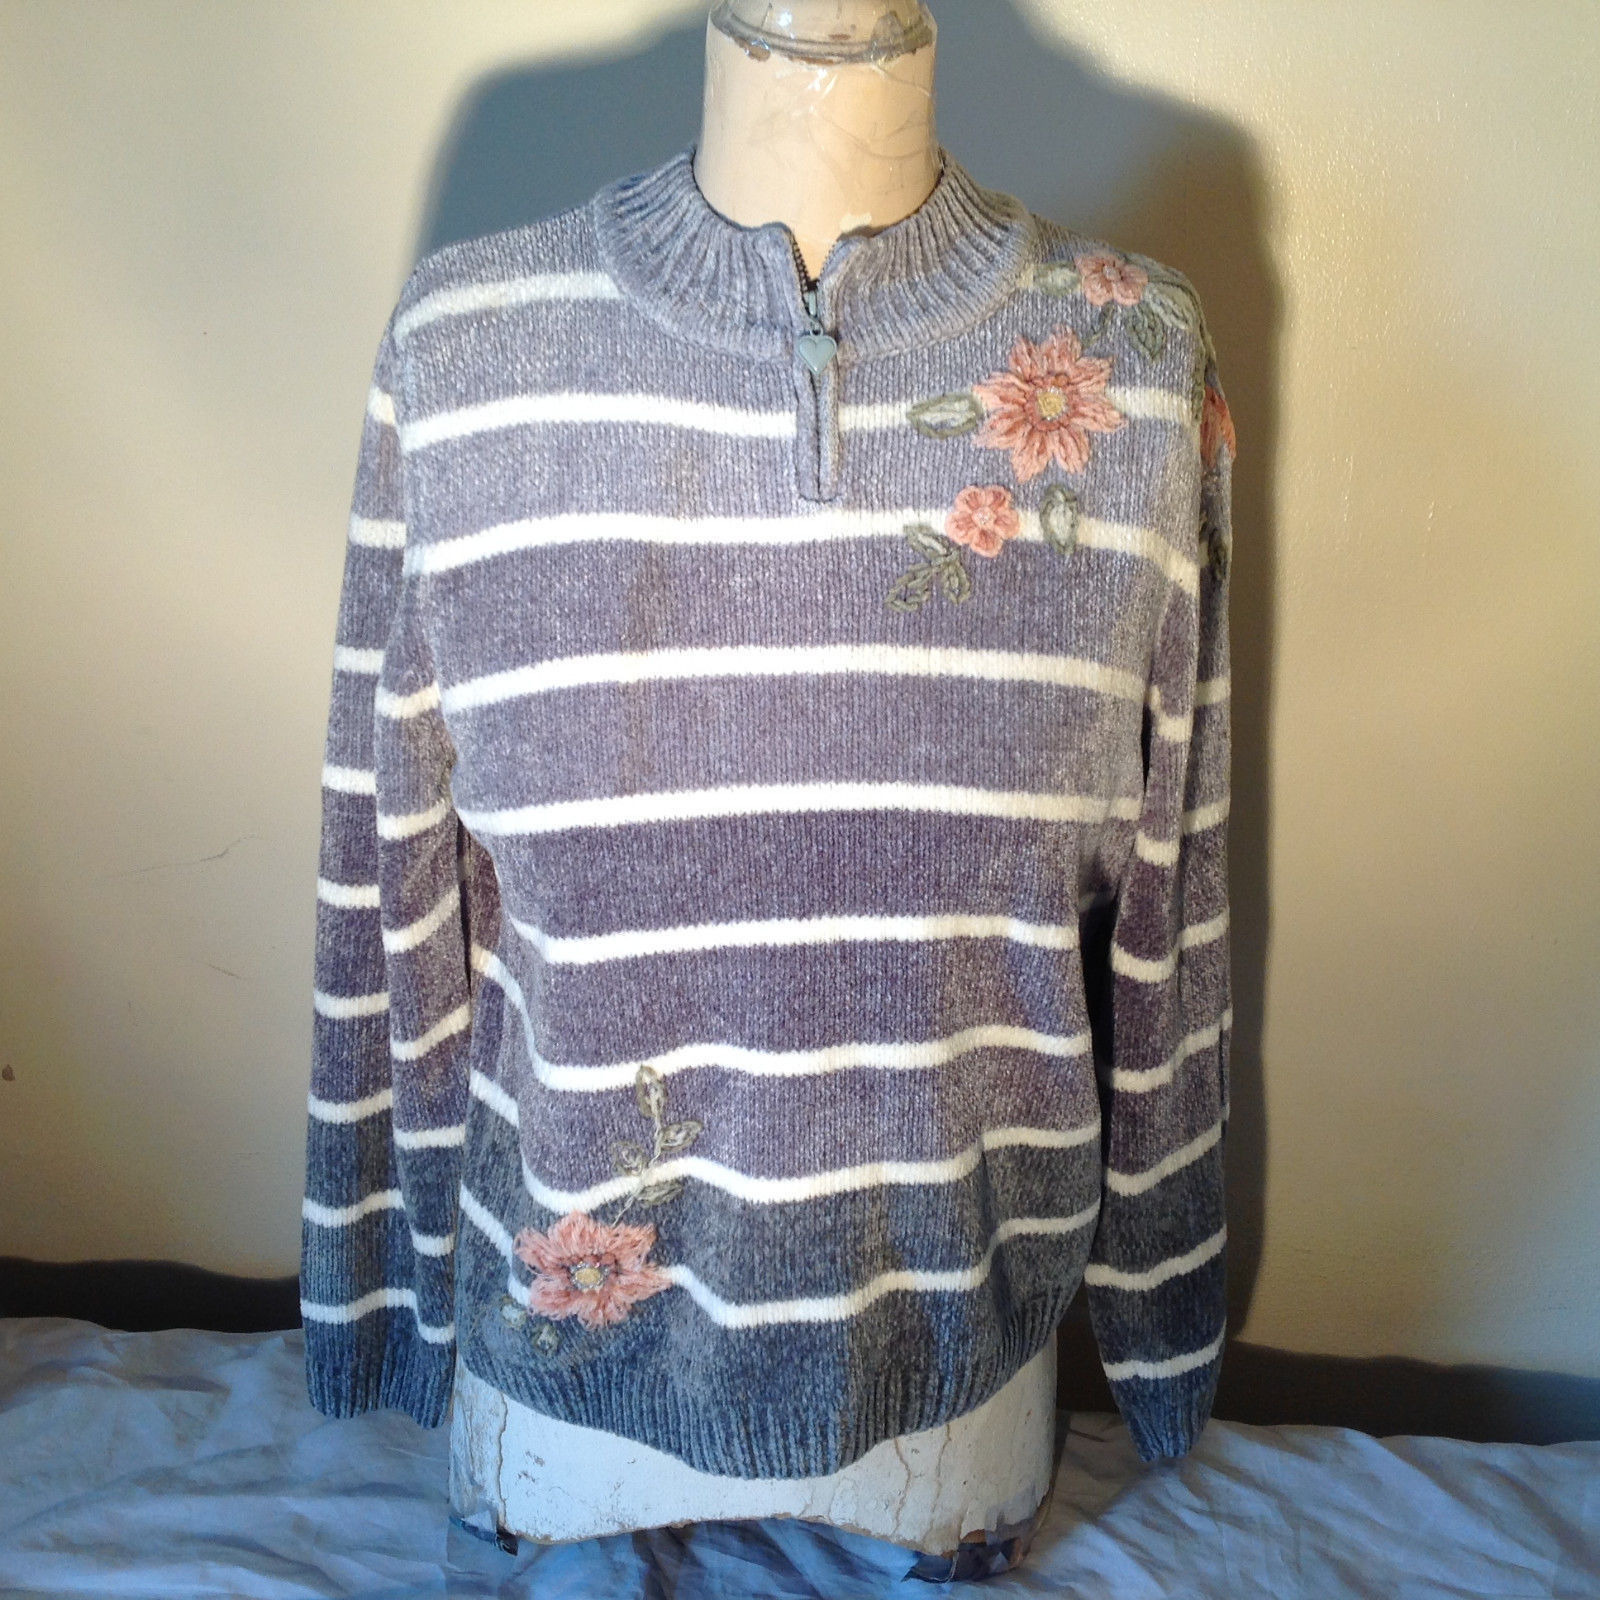 Cute Gray Sweater Very Soft Alfred Dunner Petite Stripes and Flowers Size PM